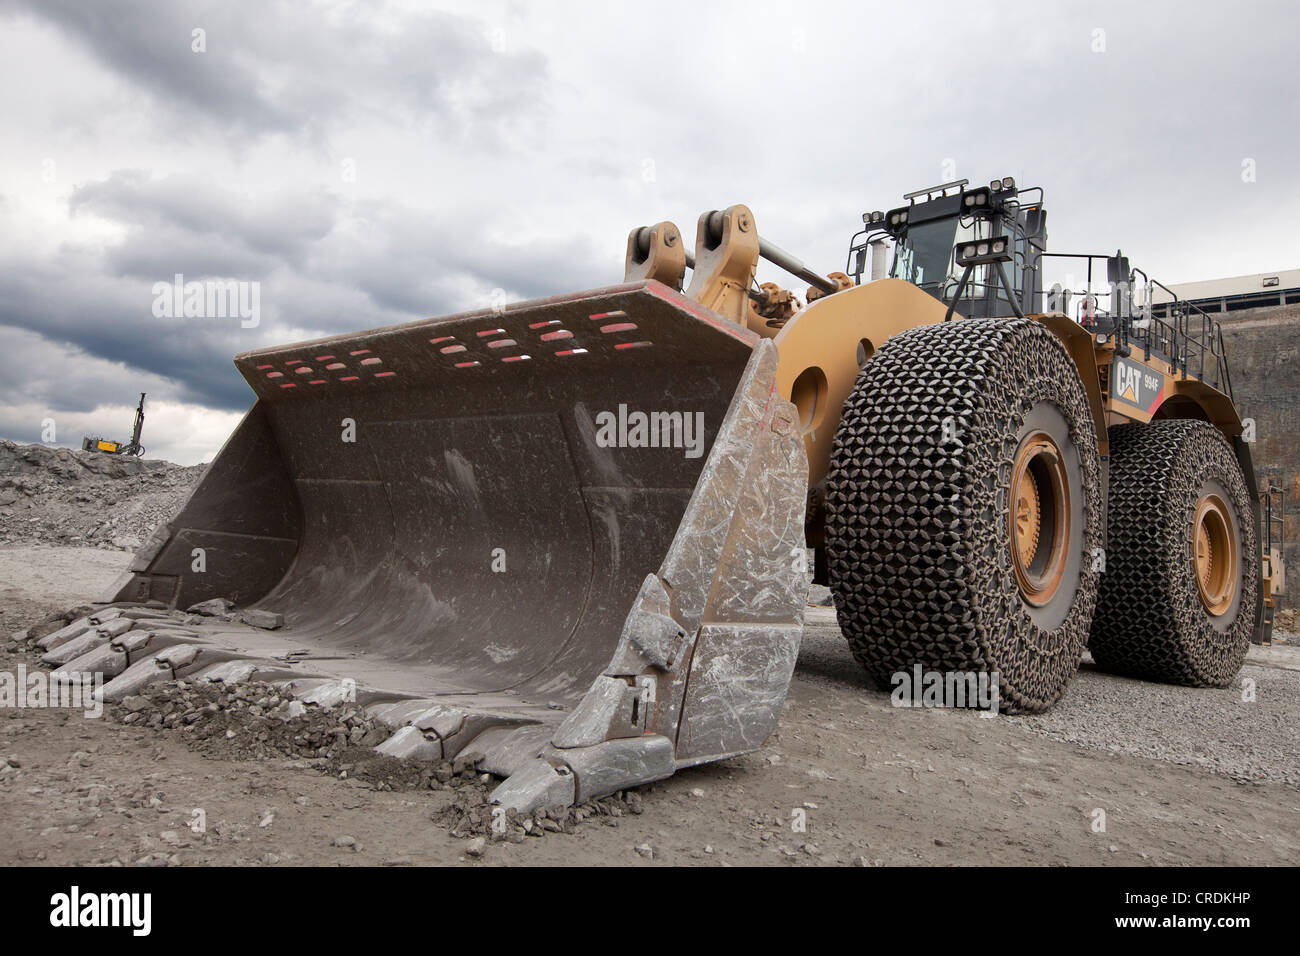 Caterpillar 994F front end loader in the Aitik copper mine of Boliden AB, about 20 km southeast of the town of Gaellivare - Stock Image